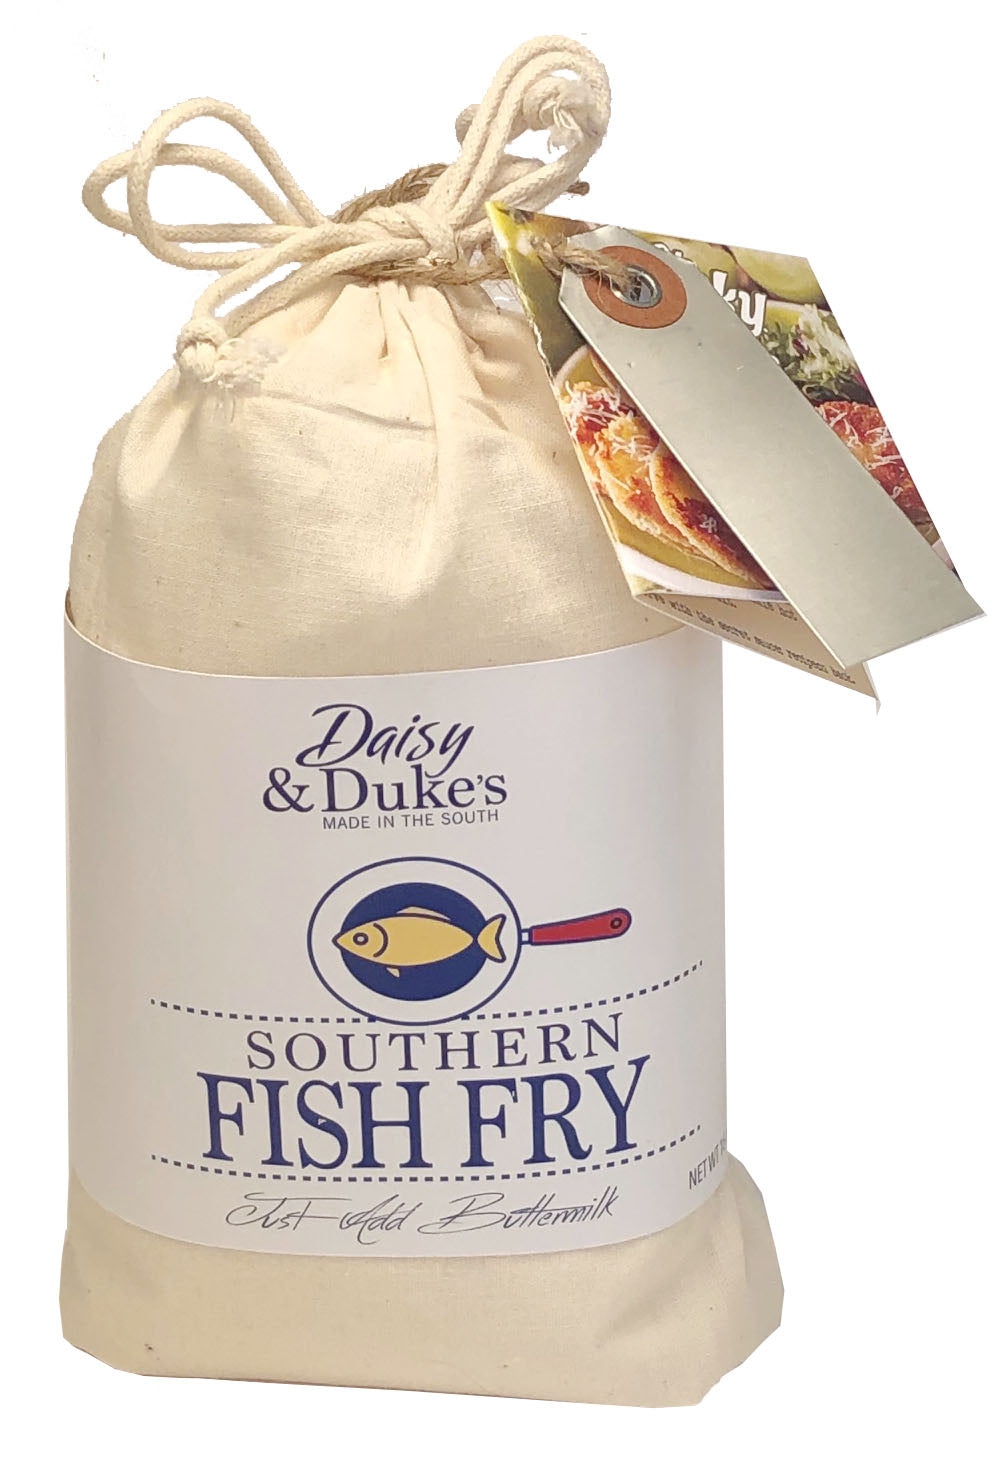 Daisy & Duke's Fish Fry